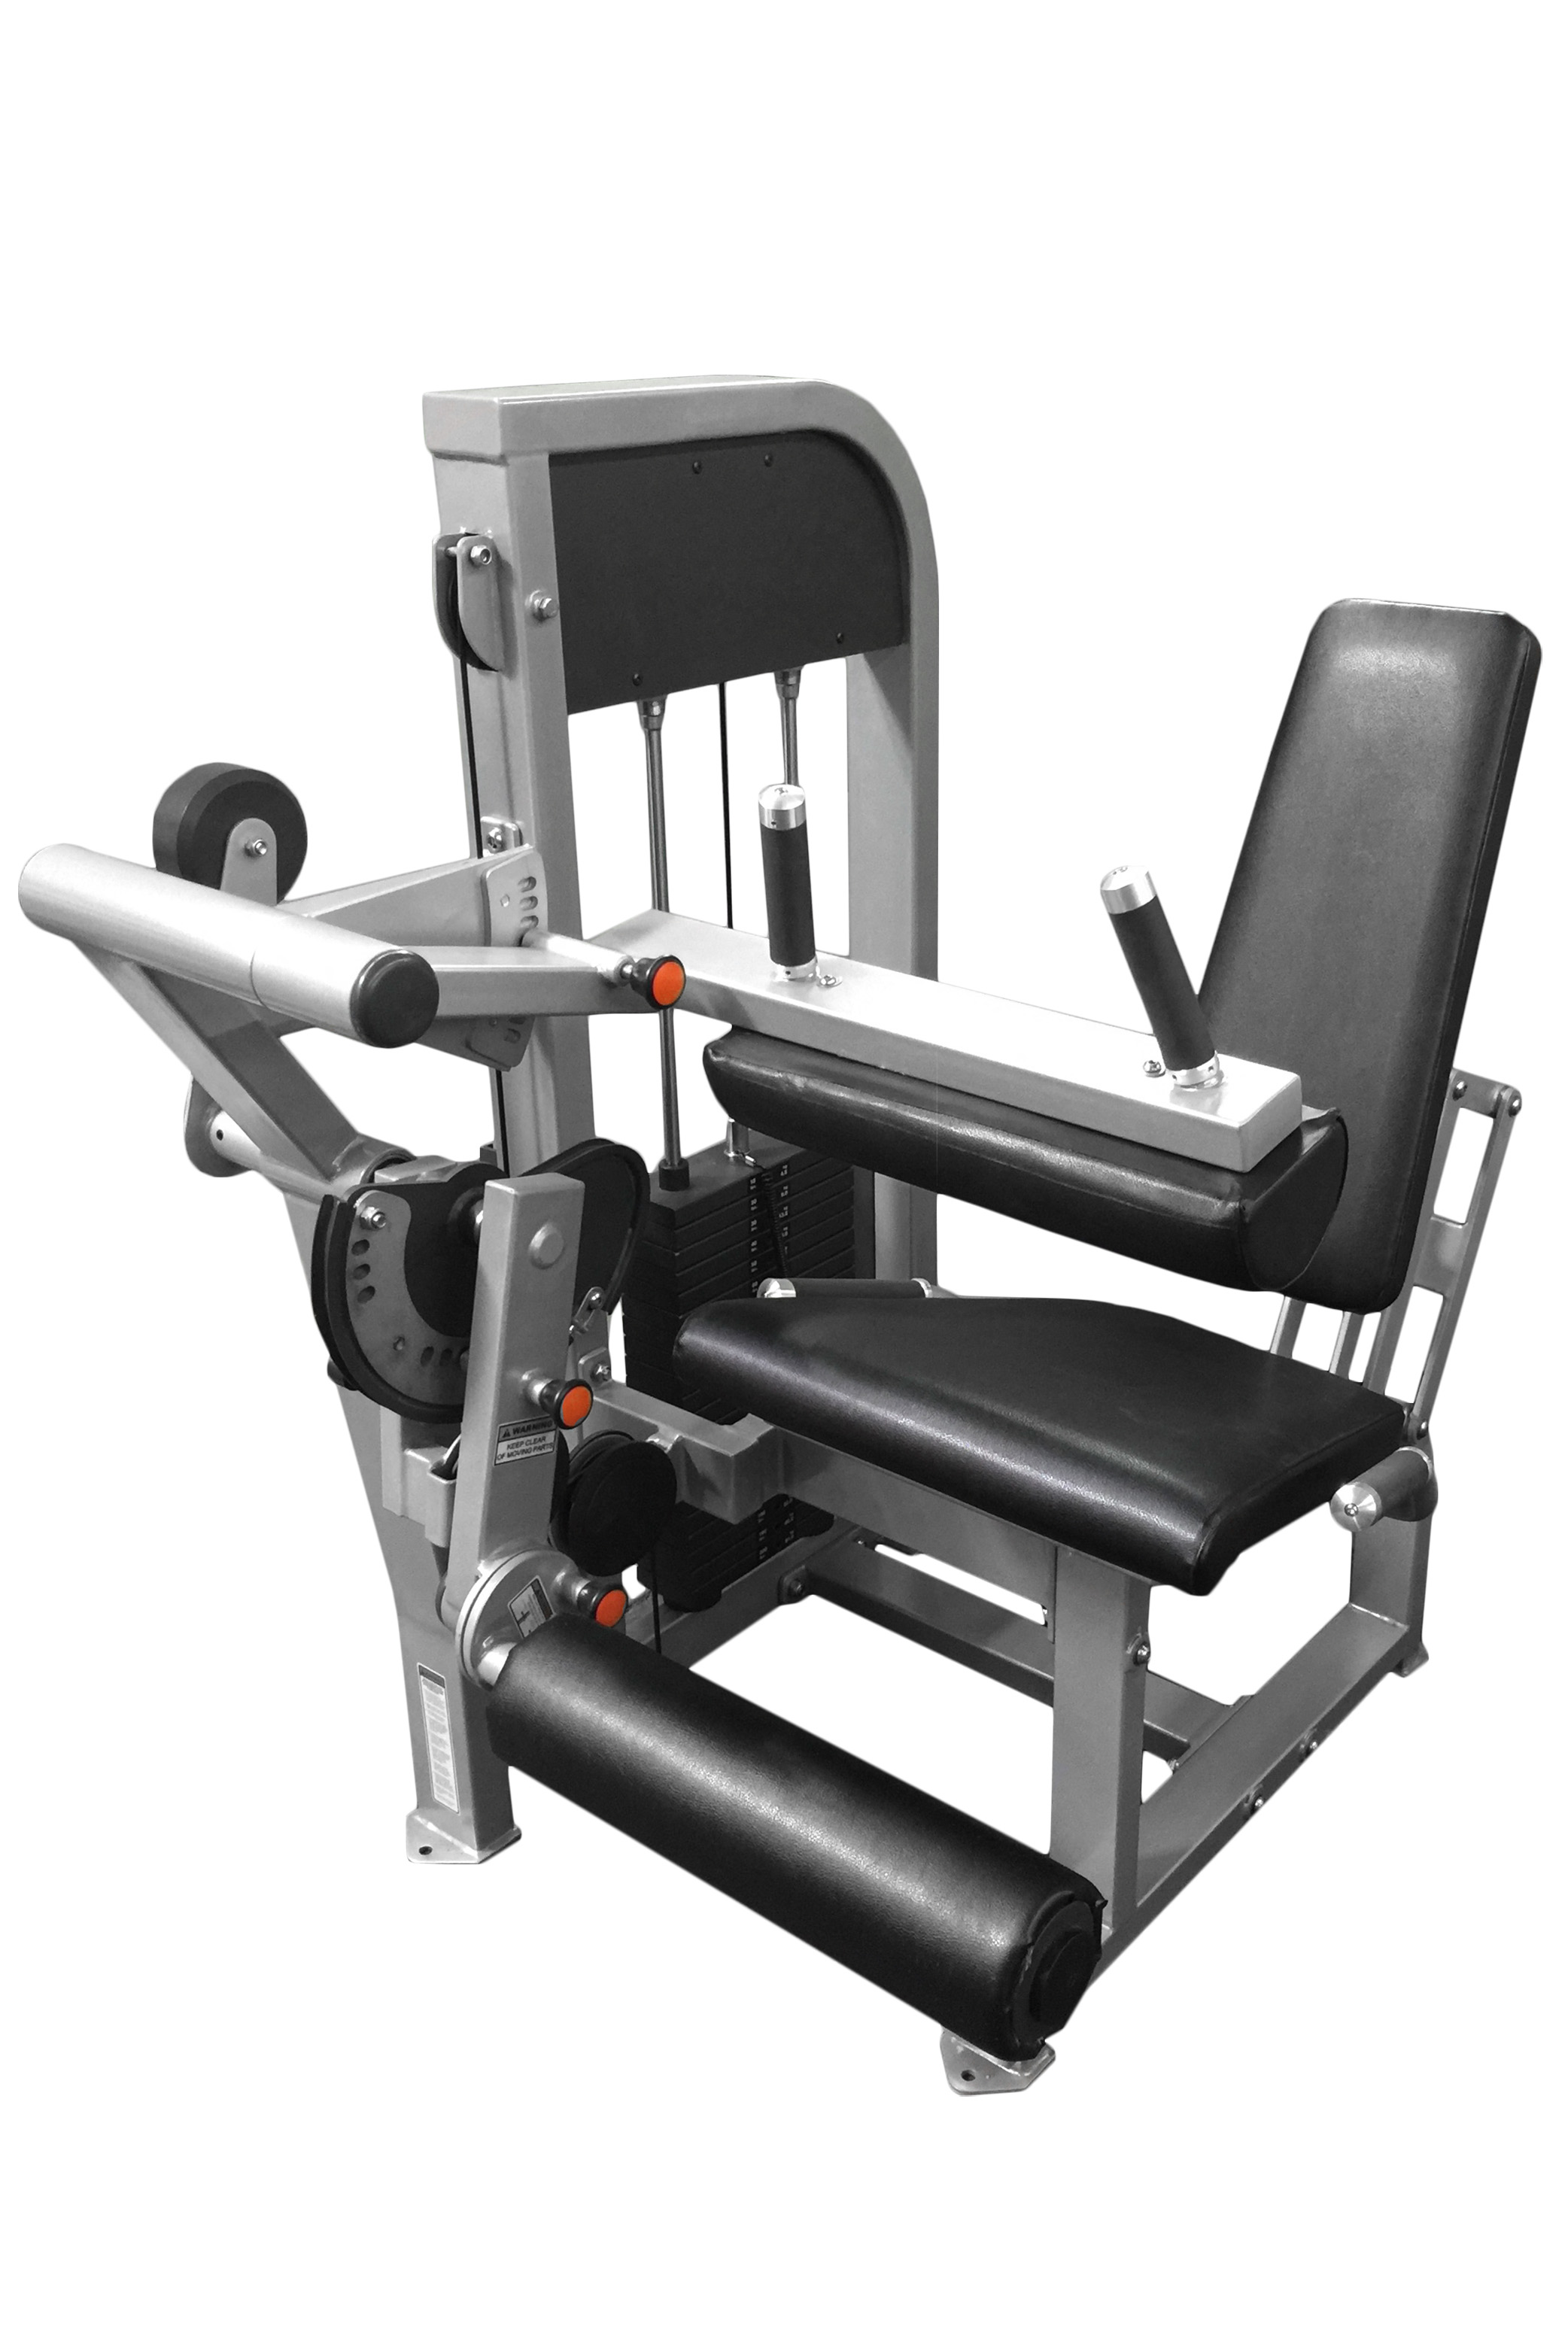 Leg Extension/Seated Leg Curl Machine | Muscle D Fitness